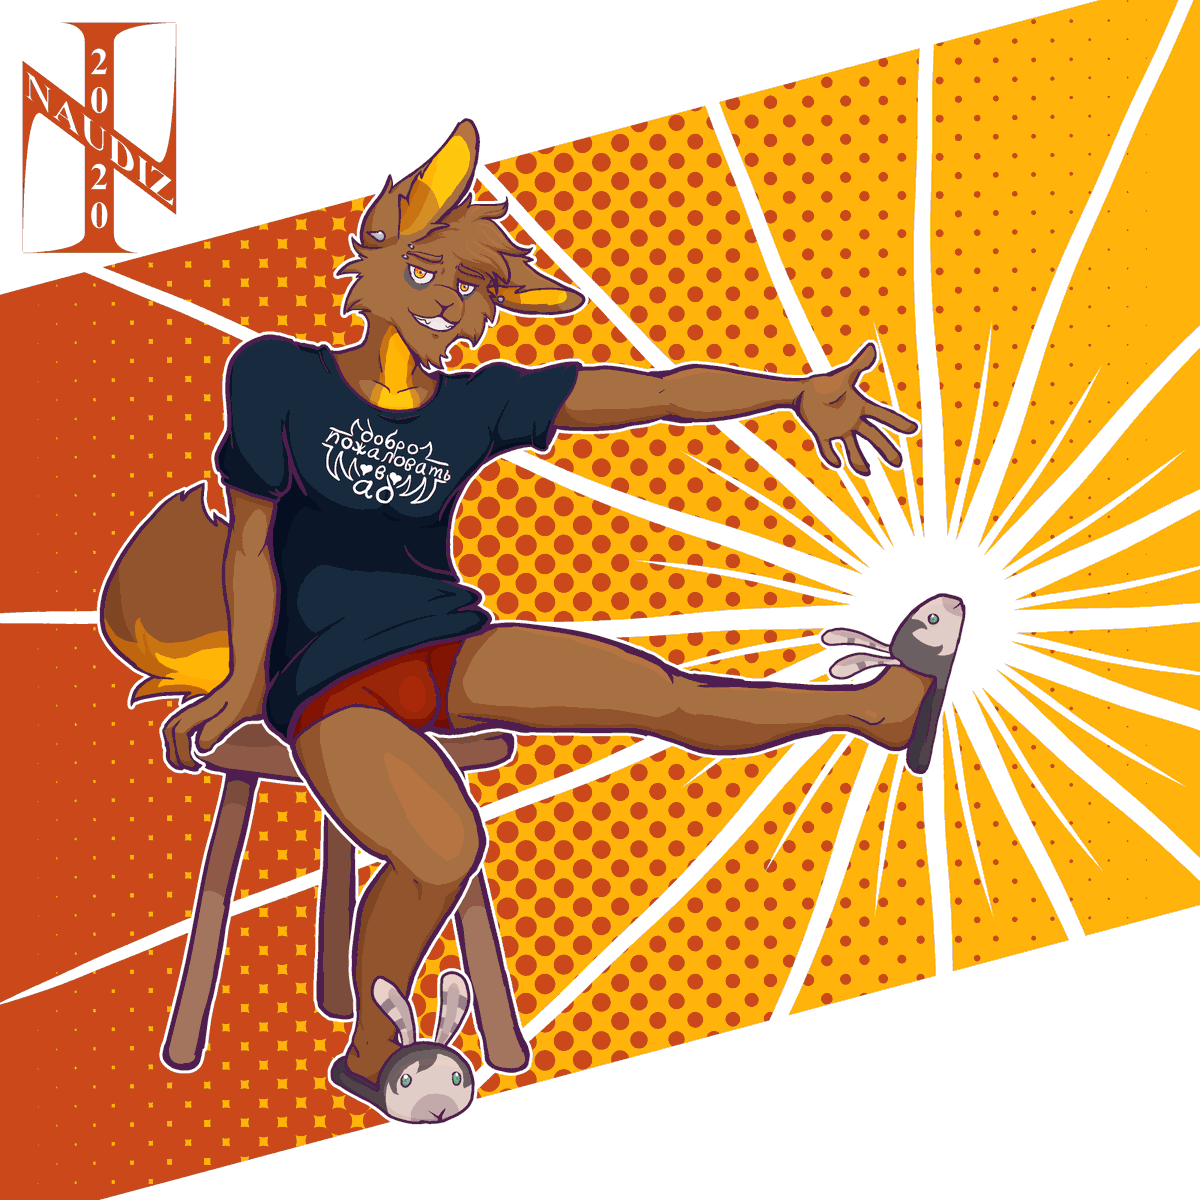 Raffle prize for @Scrubbenyan, featuring his rabbit, Mason, showing off some new kicks modeled after a special someone.  Comments, RTs much appreciated! 🧡🐰💚  #furry #anthro #furryart #anthroart